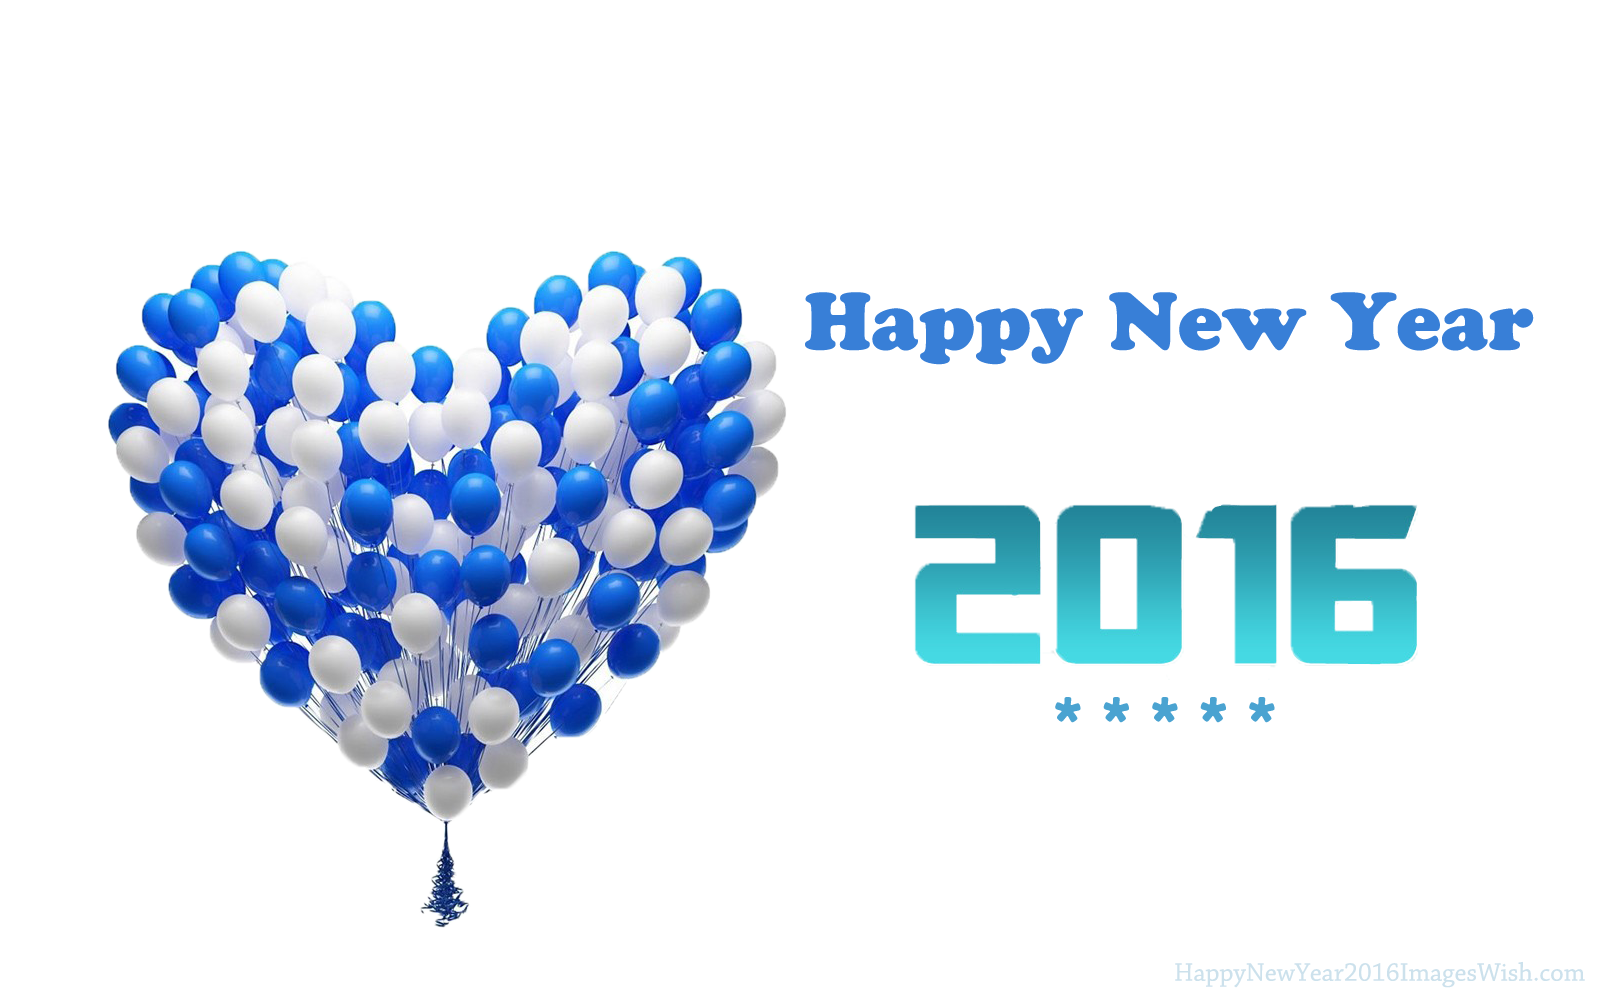 HD Happy New Year 2016 Images